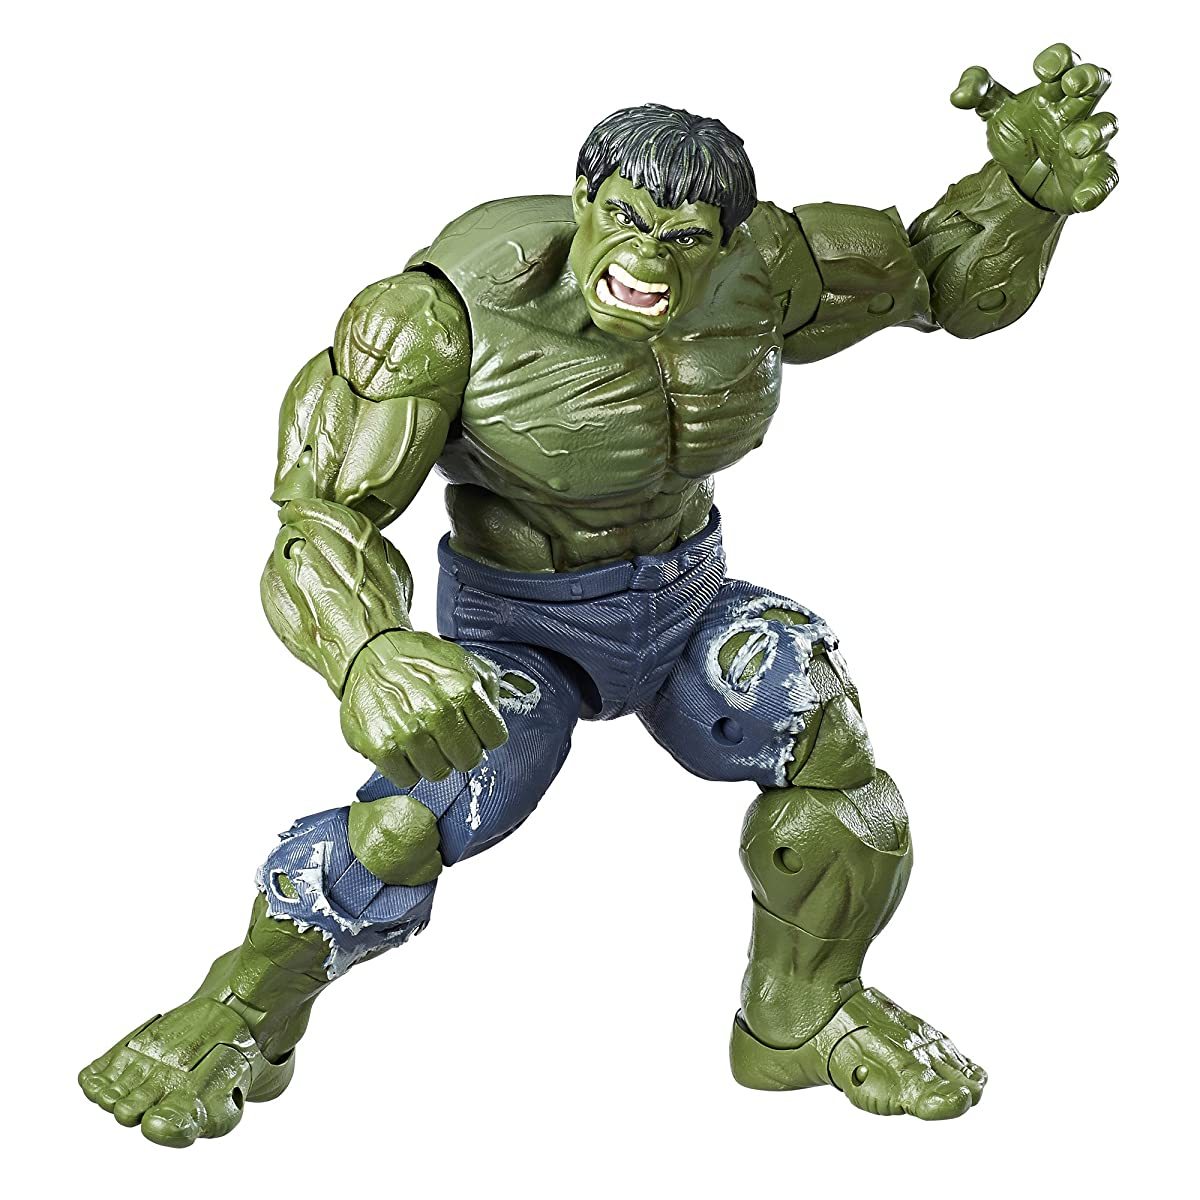 Avengers Marvel Legends Series Hulk, 14.5-inch